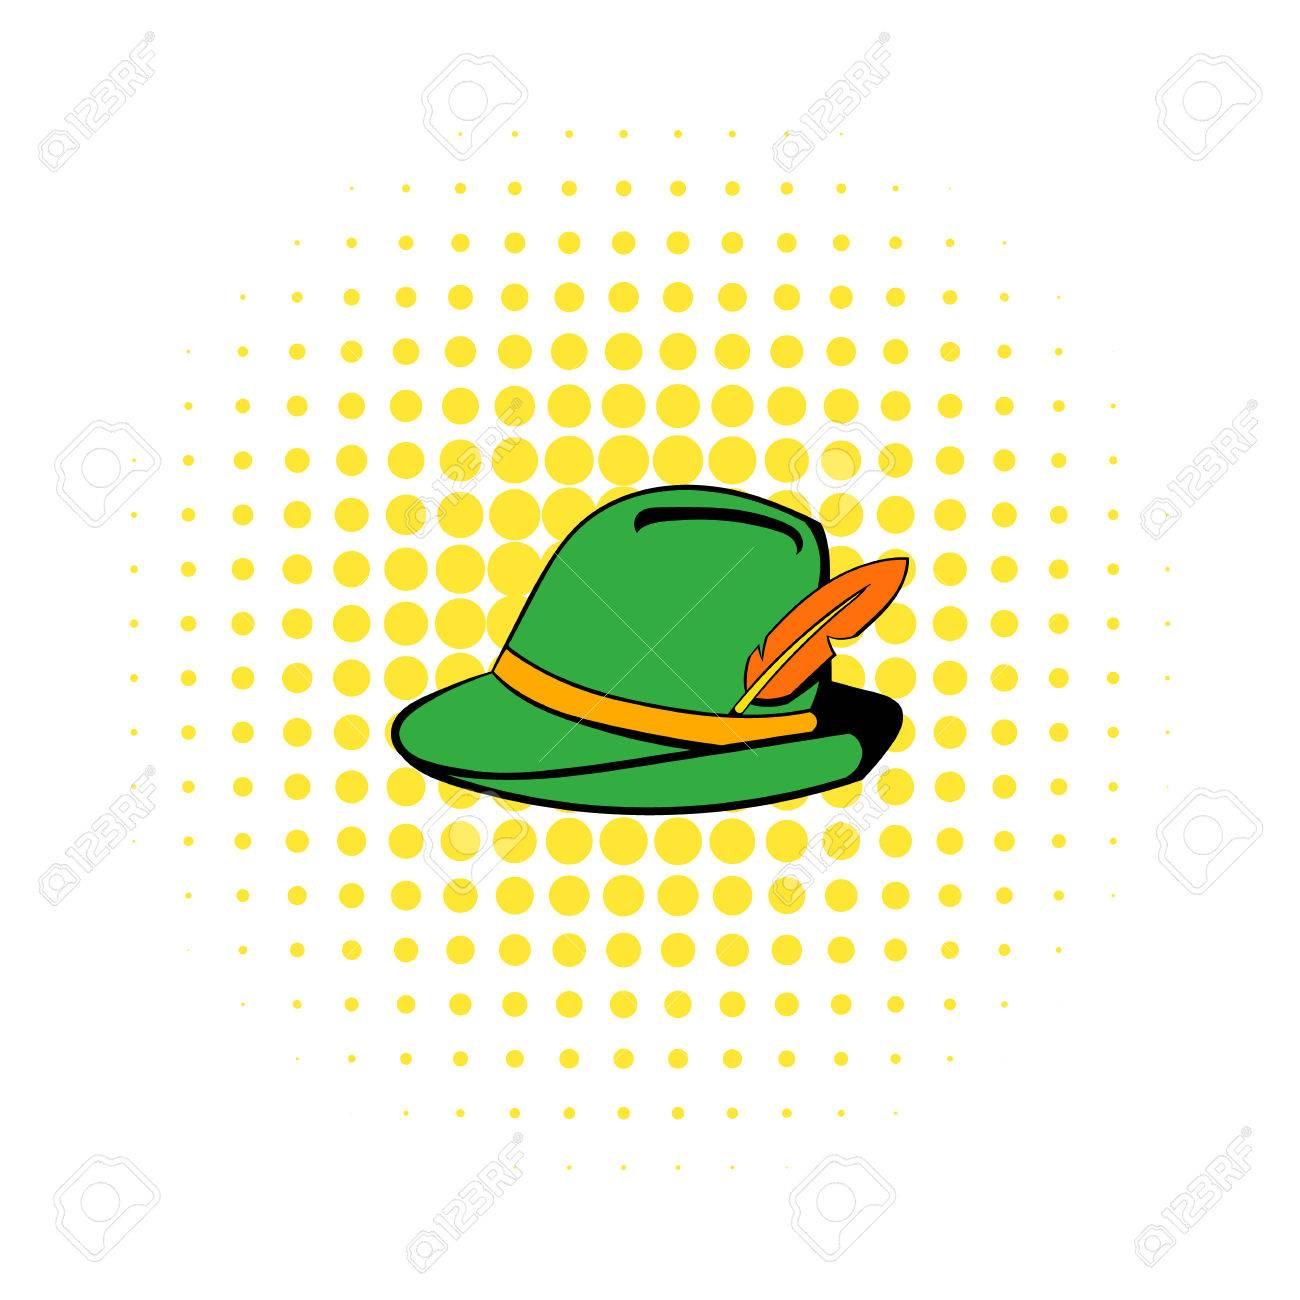 f573994ec84 Green hat with feather icon in comics style on a white background Stock  Vector - 56308865